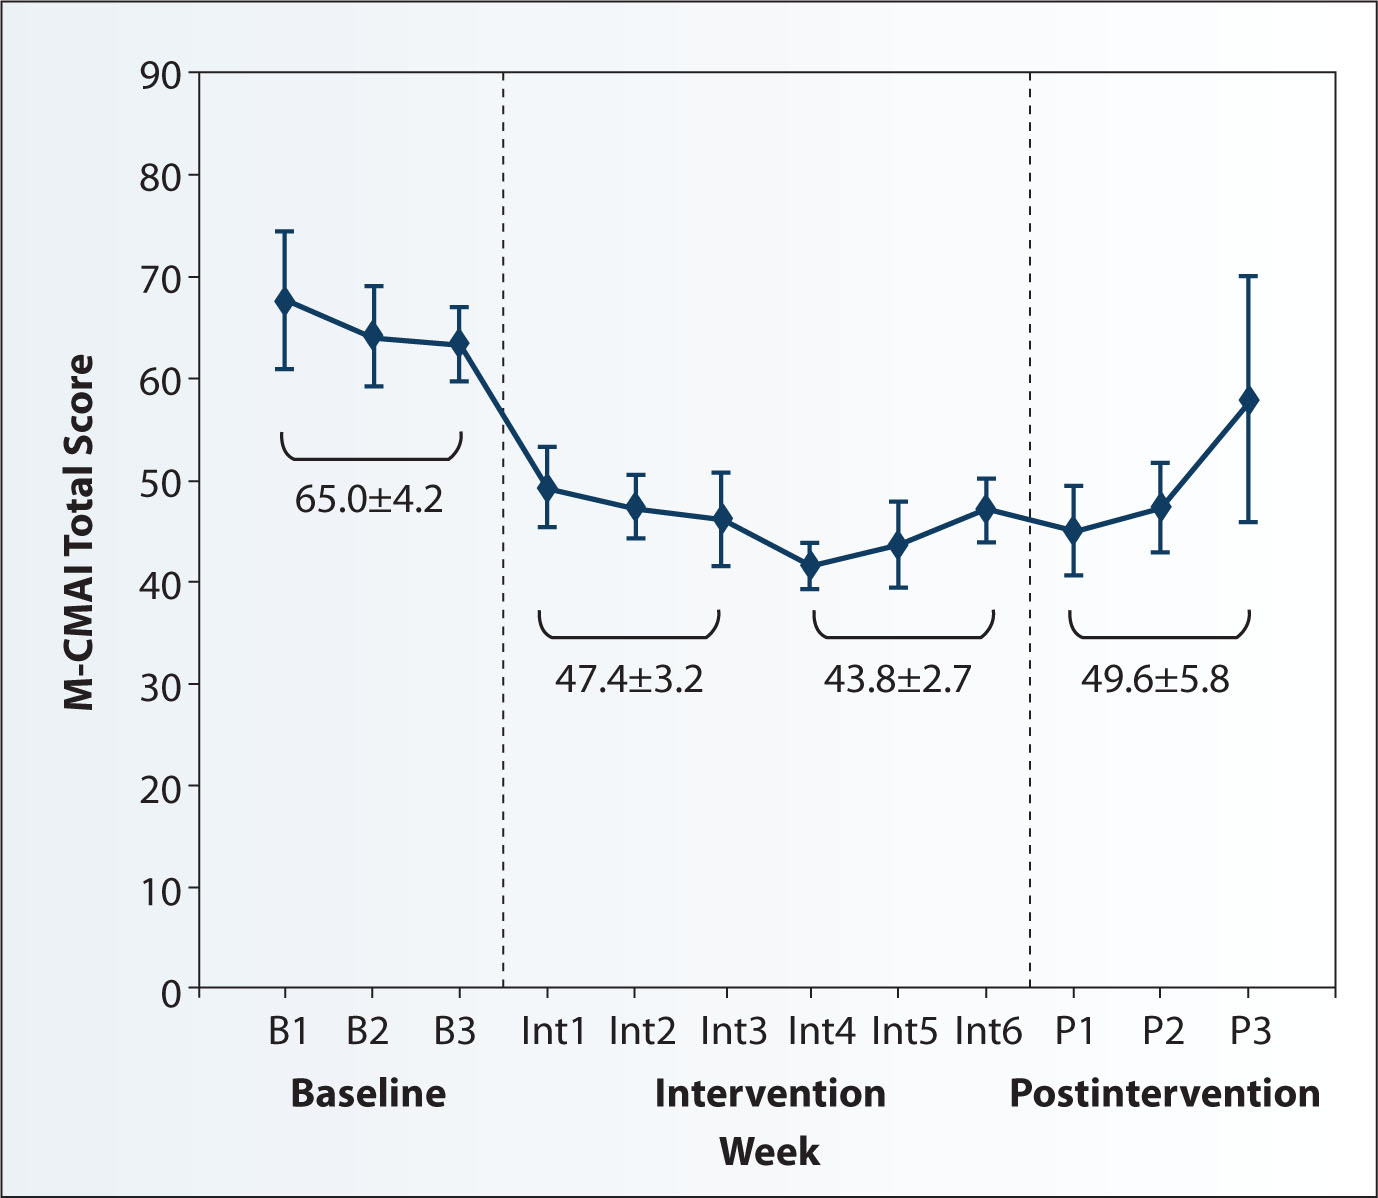 Mean total scores of the modified Cohen-Mansfield Agitation Inventory (M-CMAI) throughout baseline, intervention, and postintervention (N = 9).